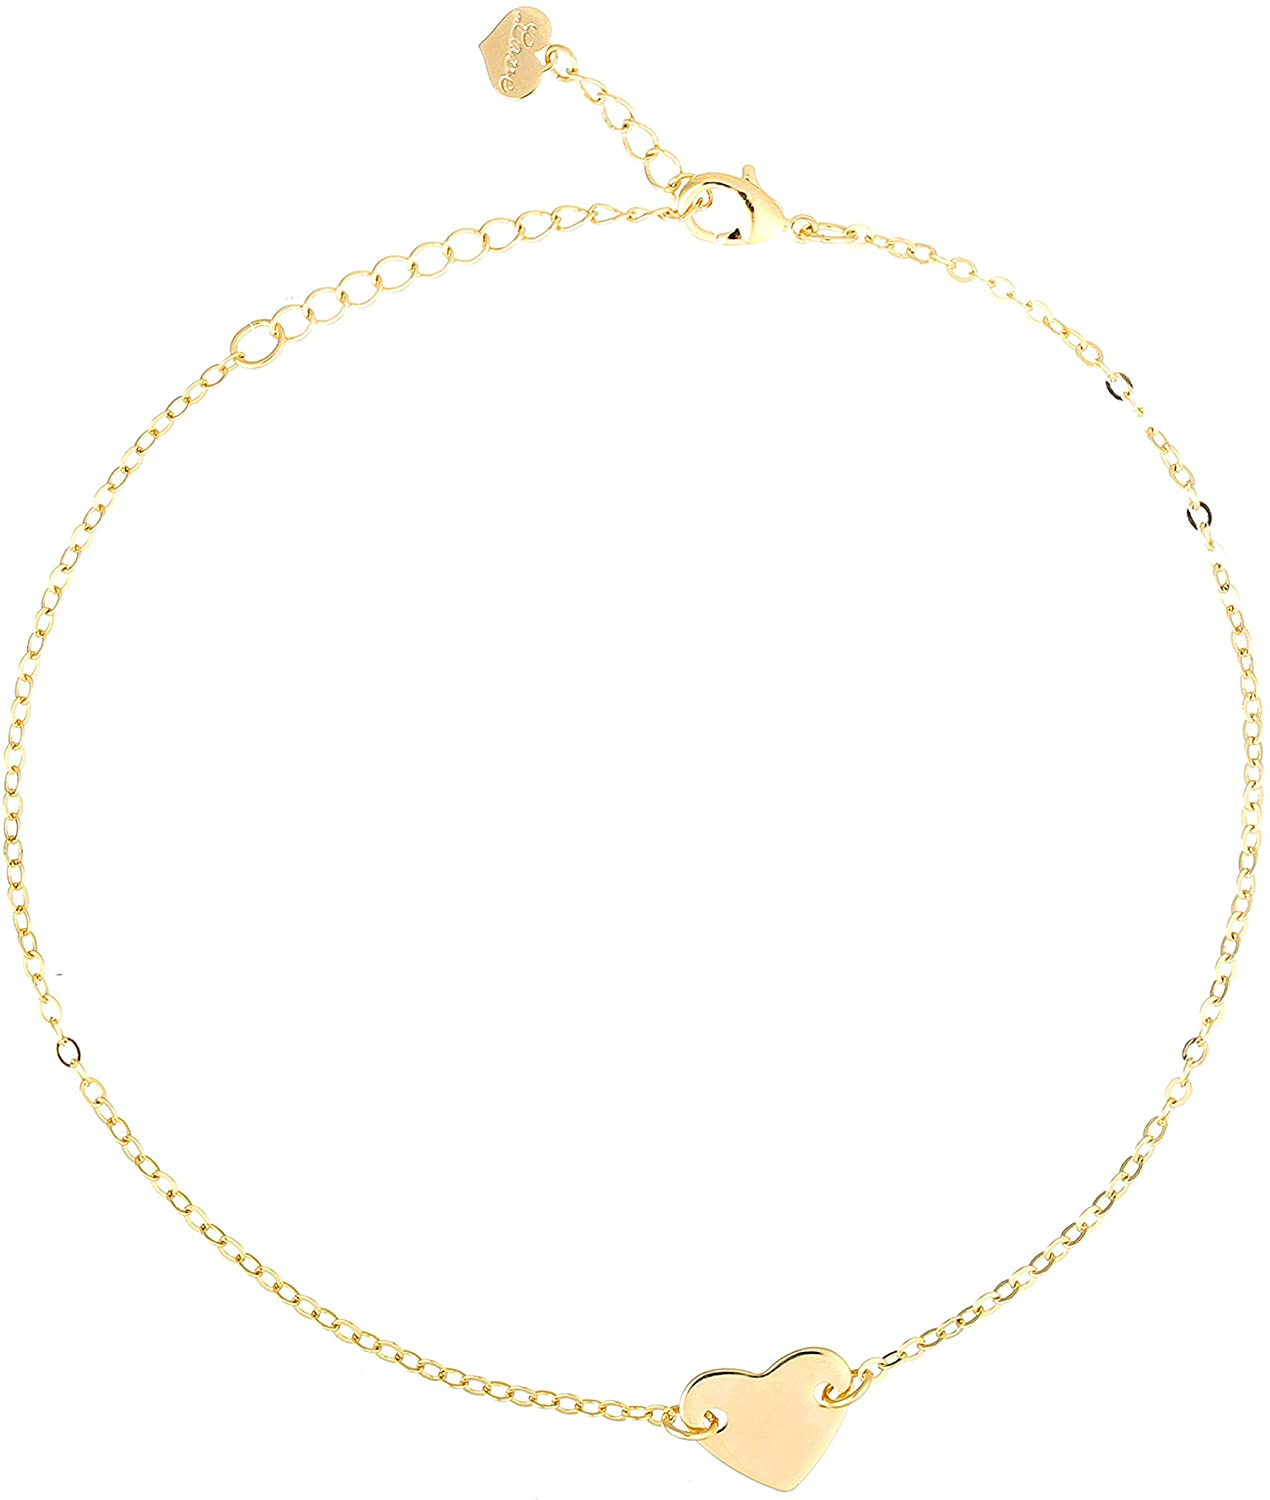 S.J JEWELRY Friendship Gift Handmade Dainty Anklet for Womens 14K Gold Plated/Silver Plated Cross and Heart Bead Chain Adjustable Foot Chain